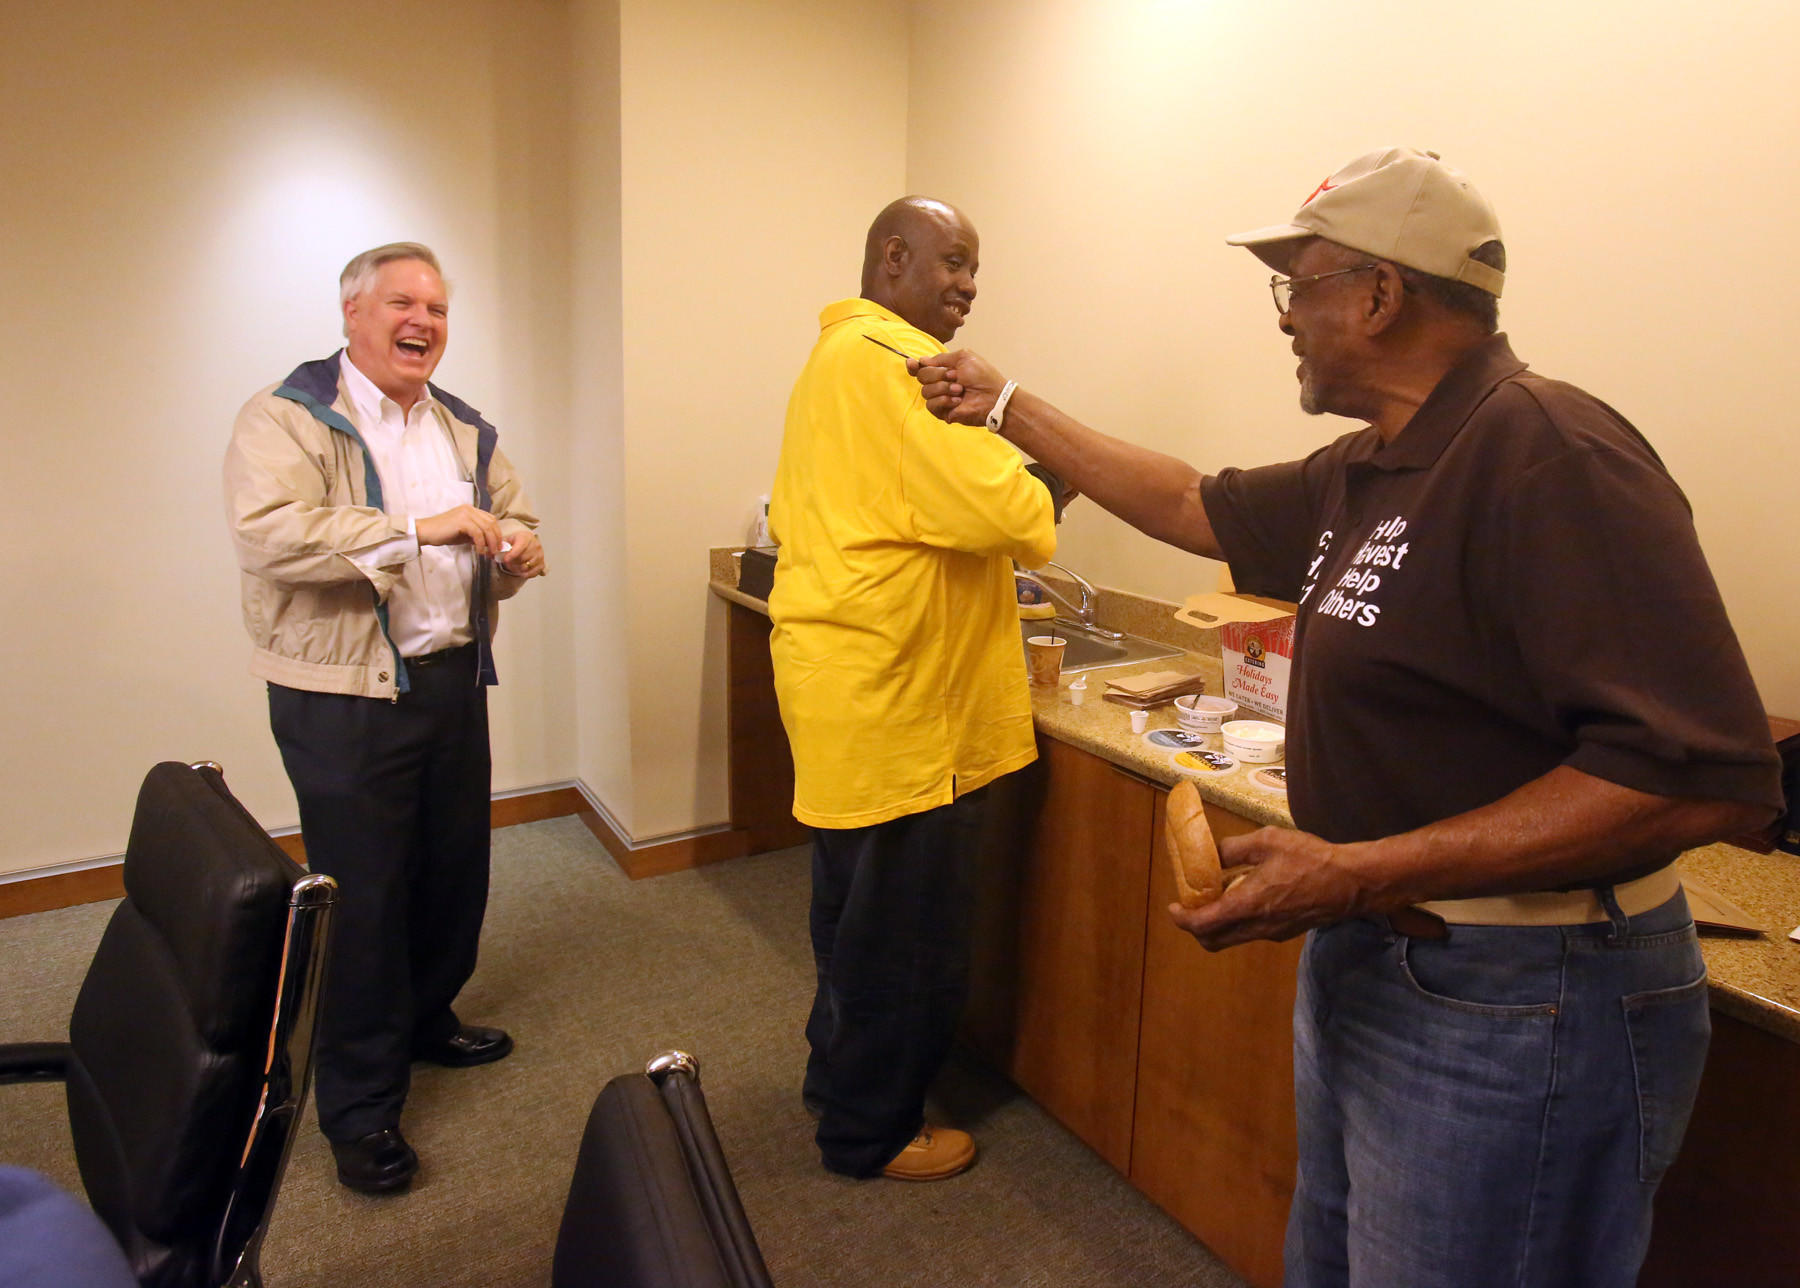 Leo Lorenz, left, member First United Methodist Church, Carl Battle, of Harvest Baptist Church, center, and Robert Woodyard, Harvest Baptist Church, have a conversation Wednesday, January 29, 2014 as they have some bagels and coffee at First United Methodist Church in downtown Orlando.